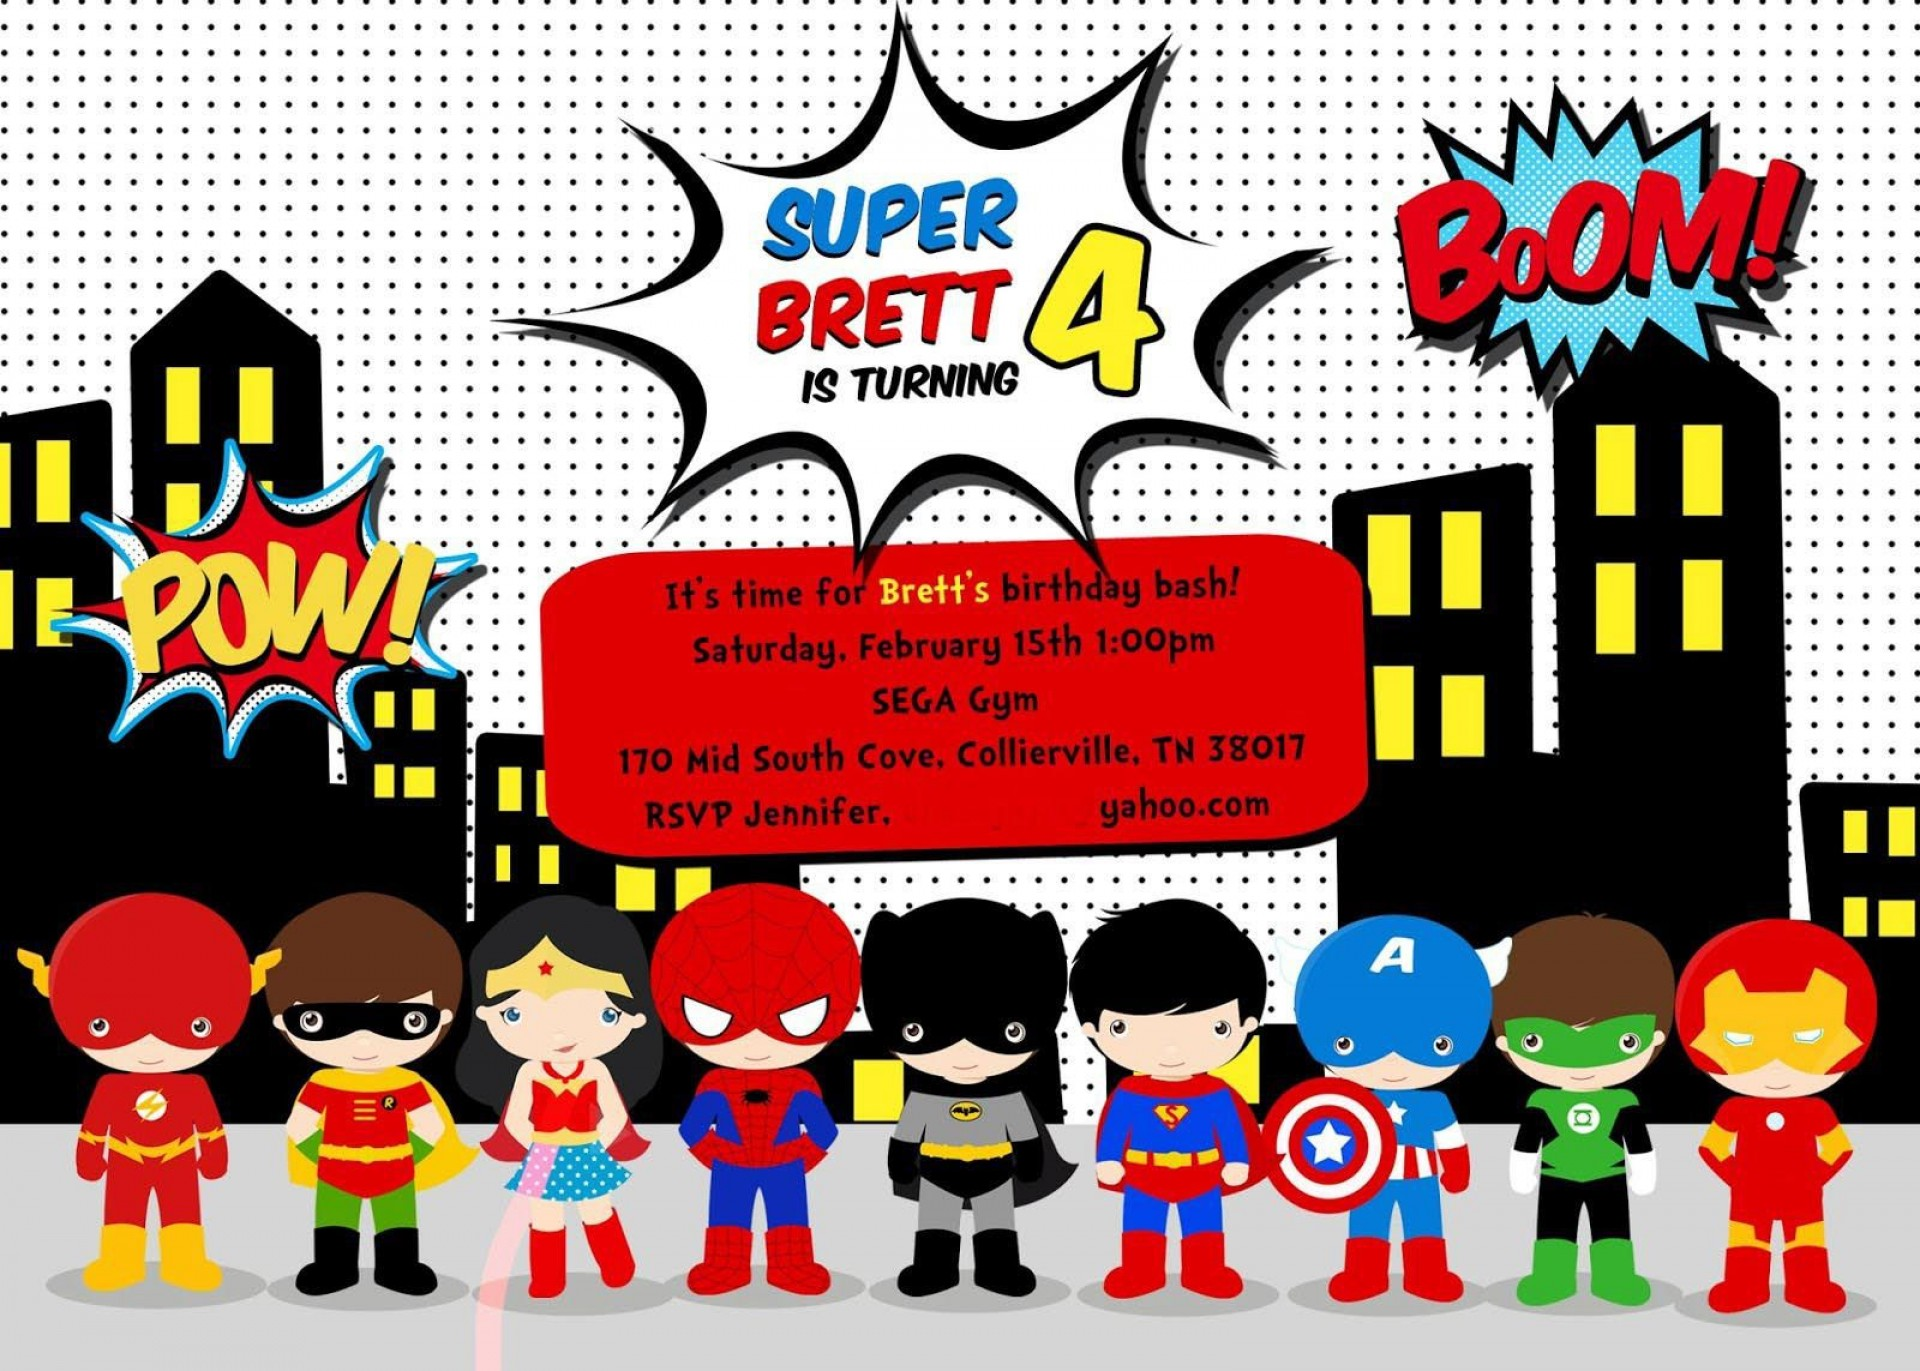 005 Remarkable Superhero Invitation Template Free Highest Clarity  Baby Shower Newspaper Birthday Party1920